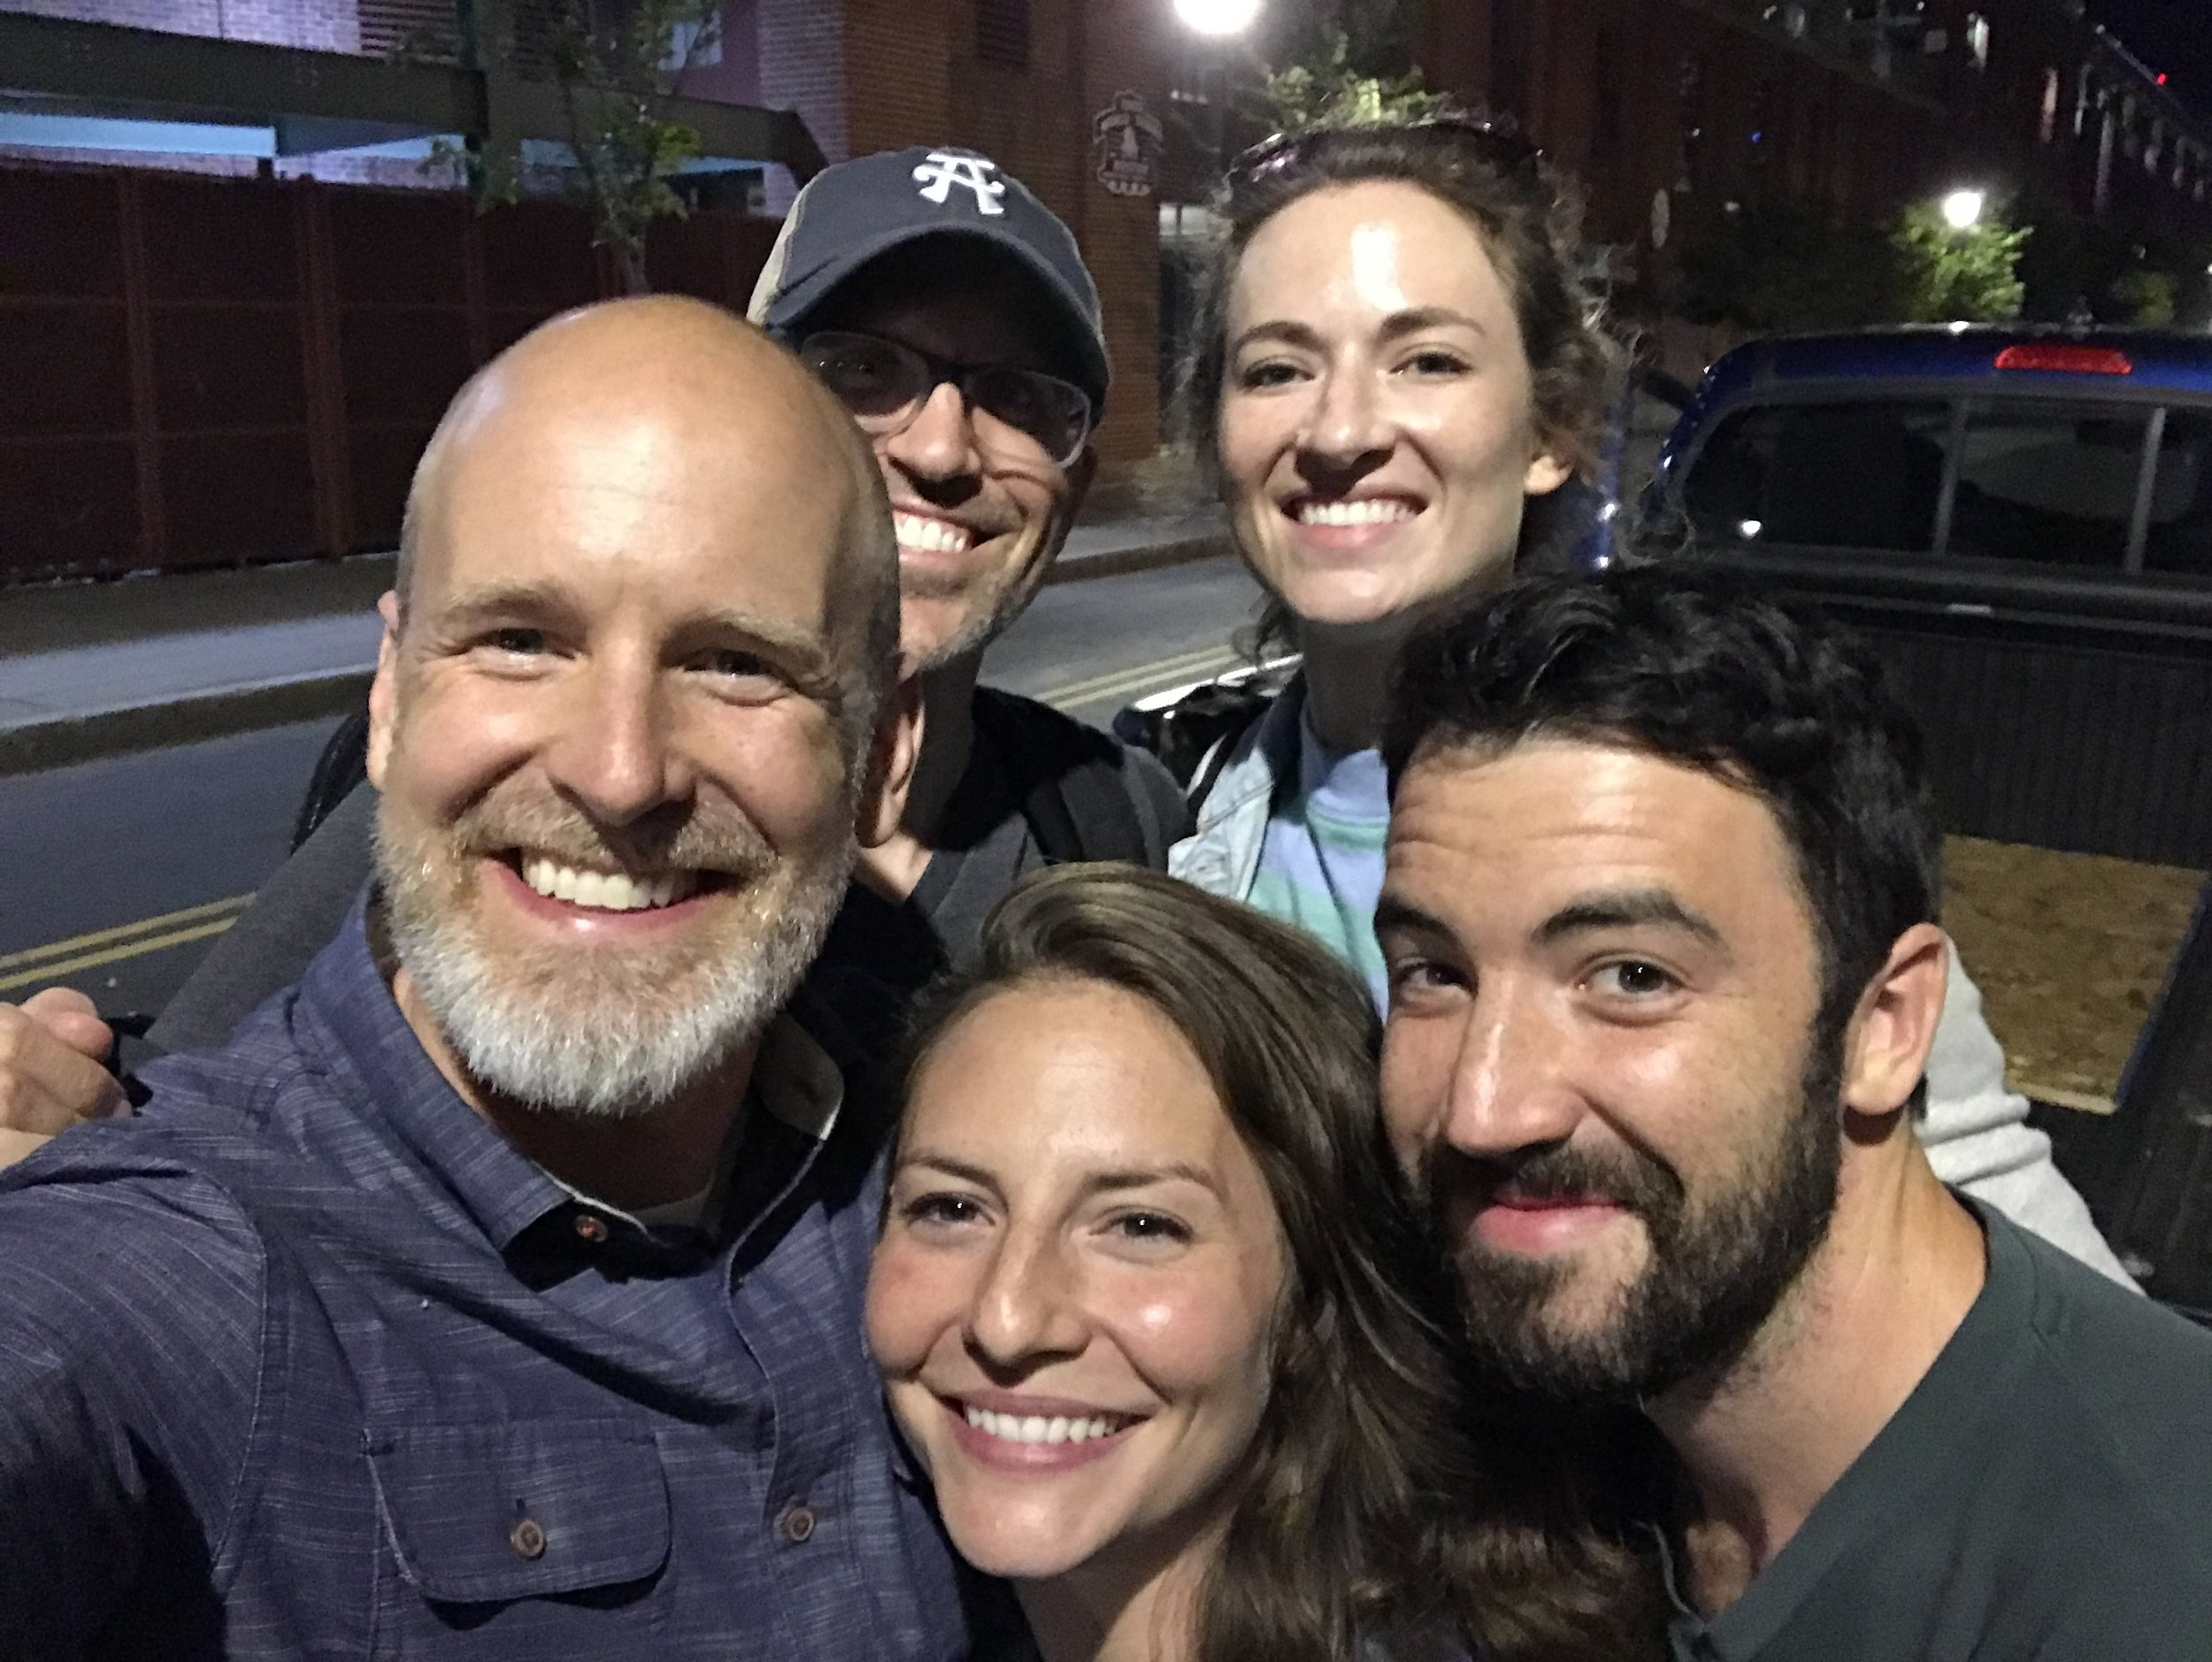 The late crew - Dylan, Carrie, Antigoni and Fritz who worked late into the night to make the shot happen. Not included but hugely important was Mike Ivins and Matt Thomas from the Red Sox and our project manager Chris.